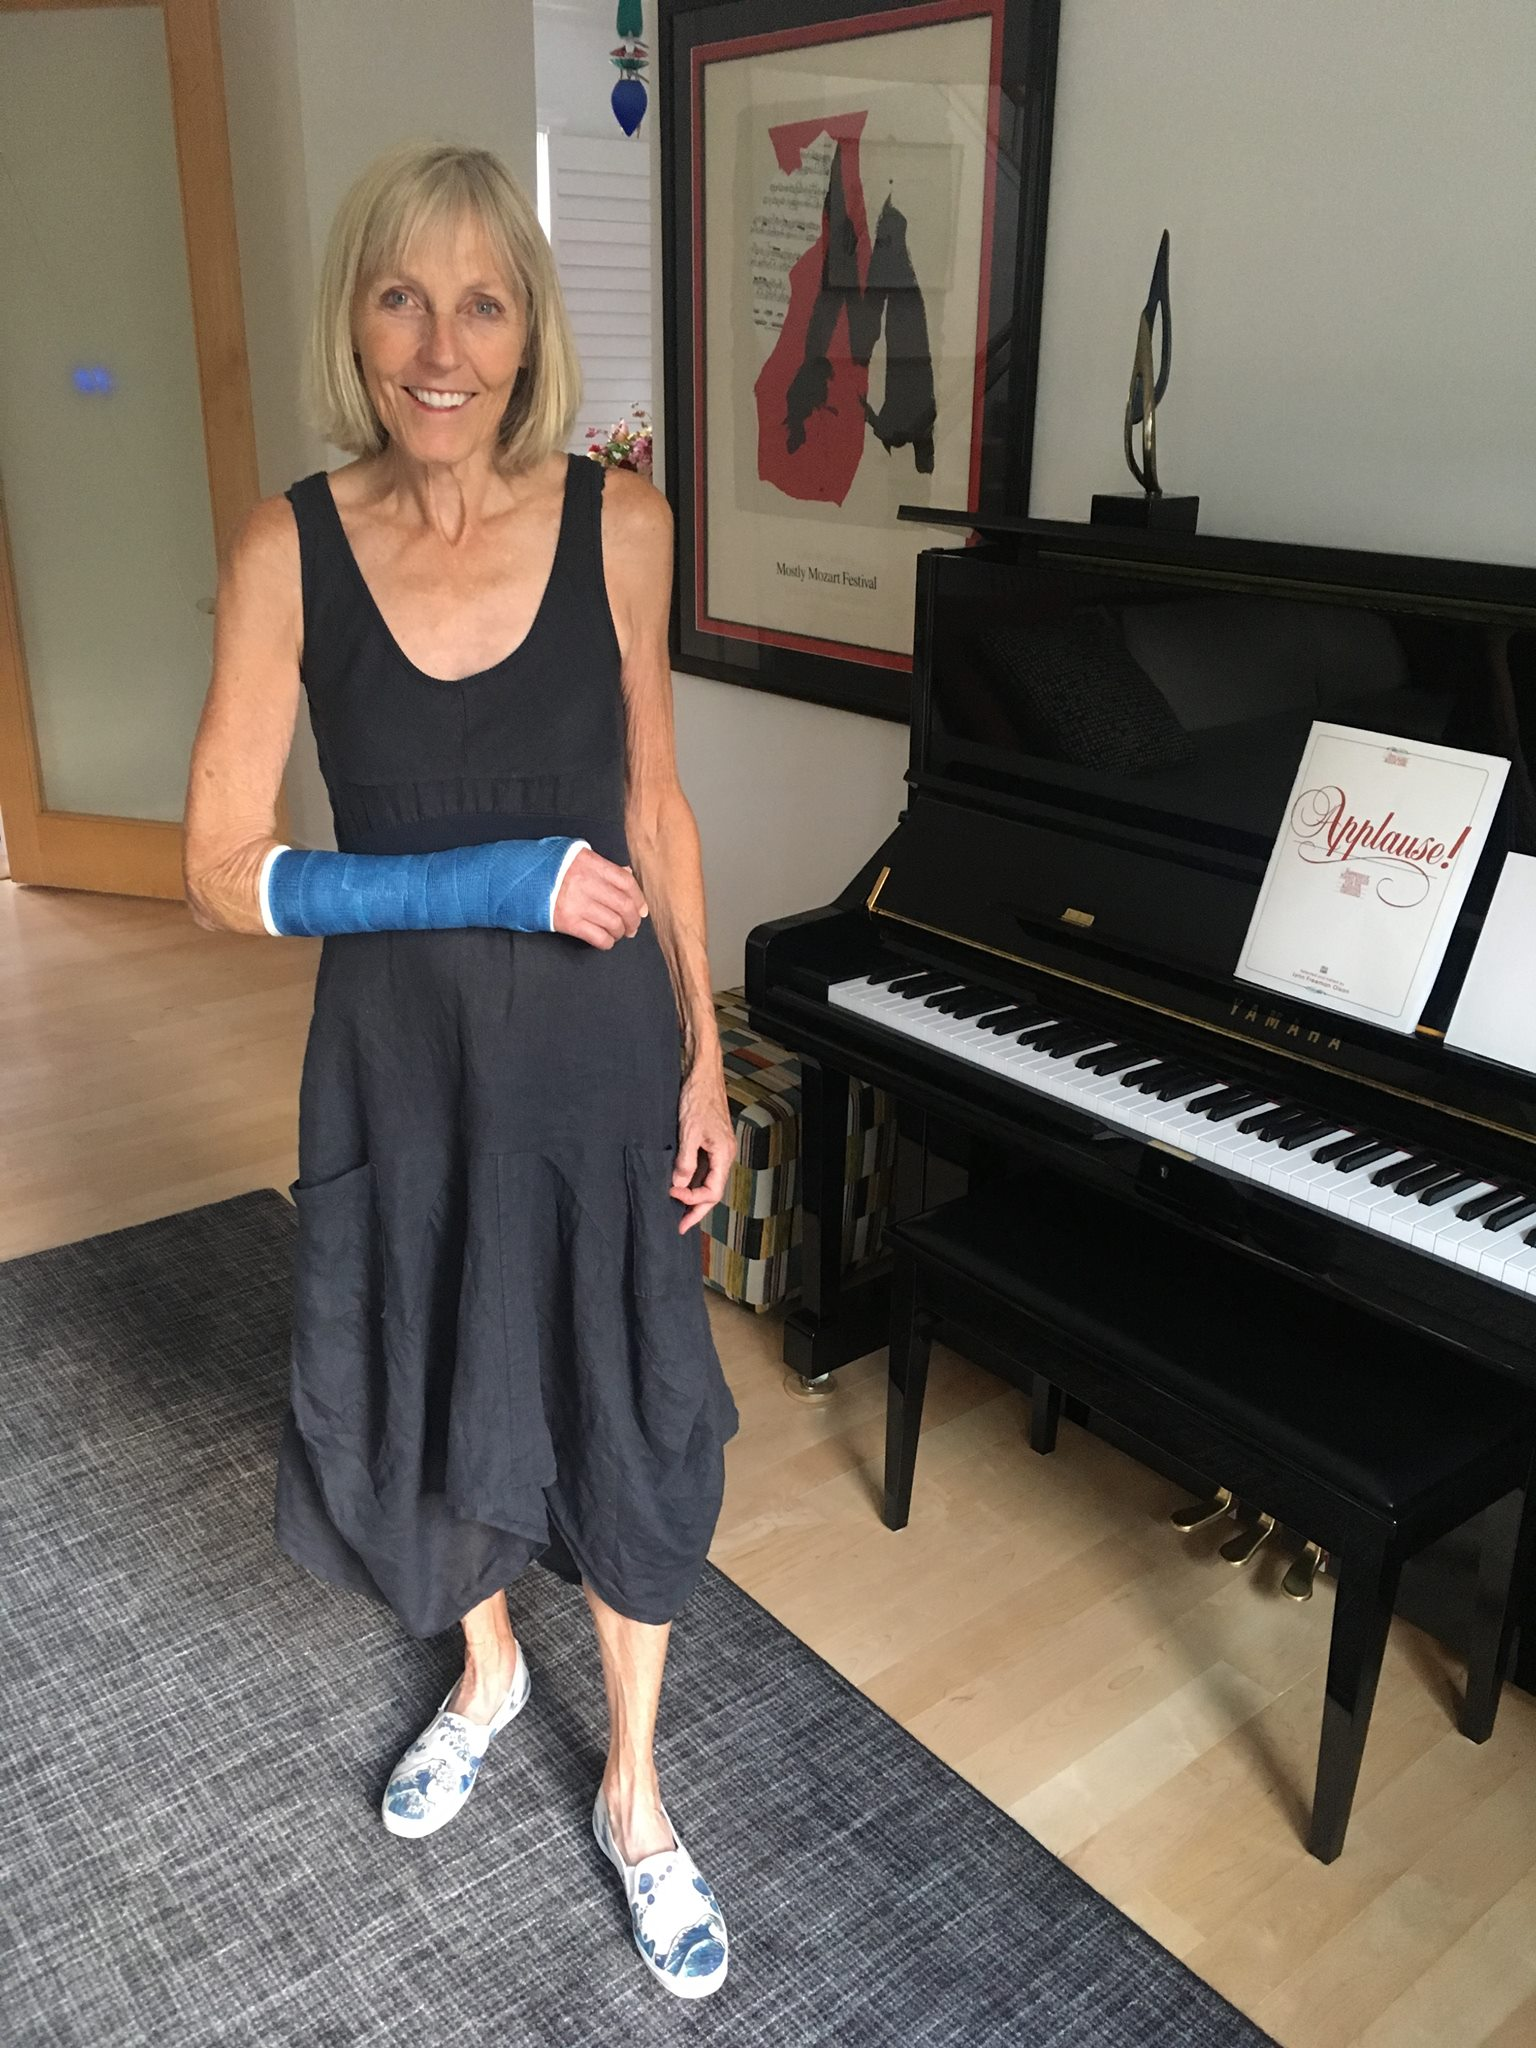 Pat with arm in new blue cast and wearing shoes that Alex created about 10 years ago.